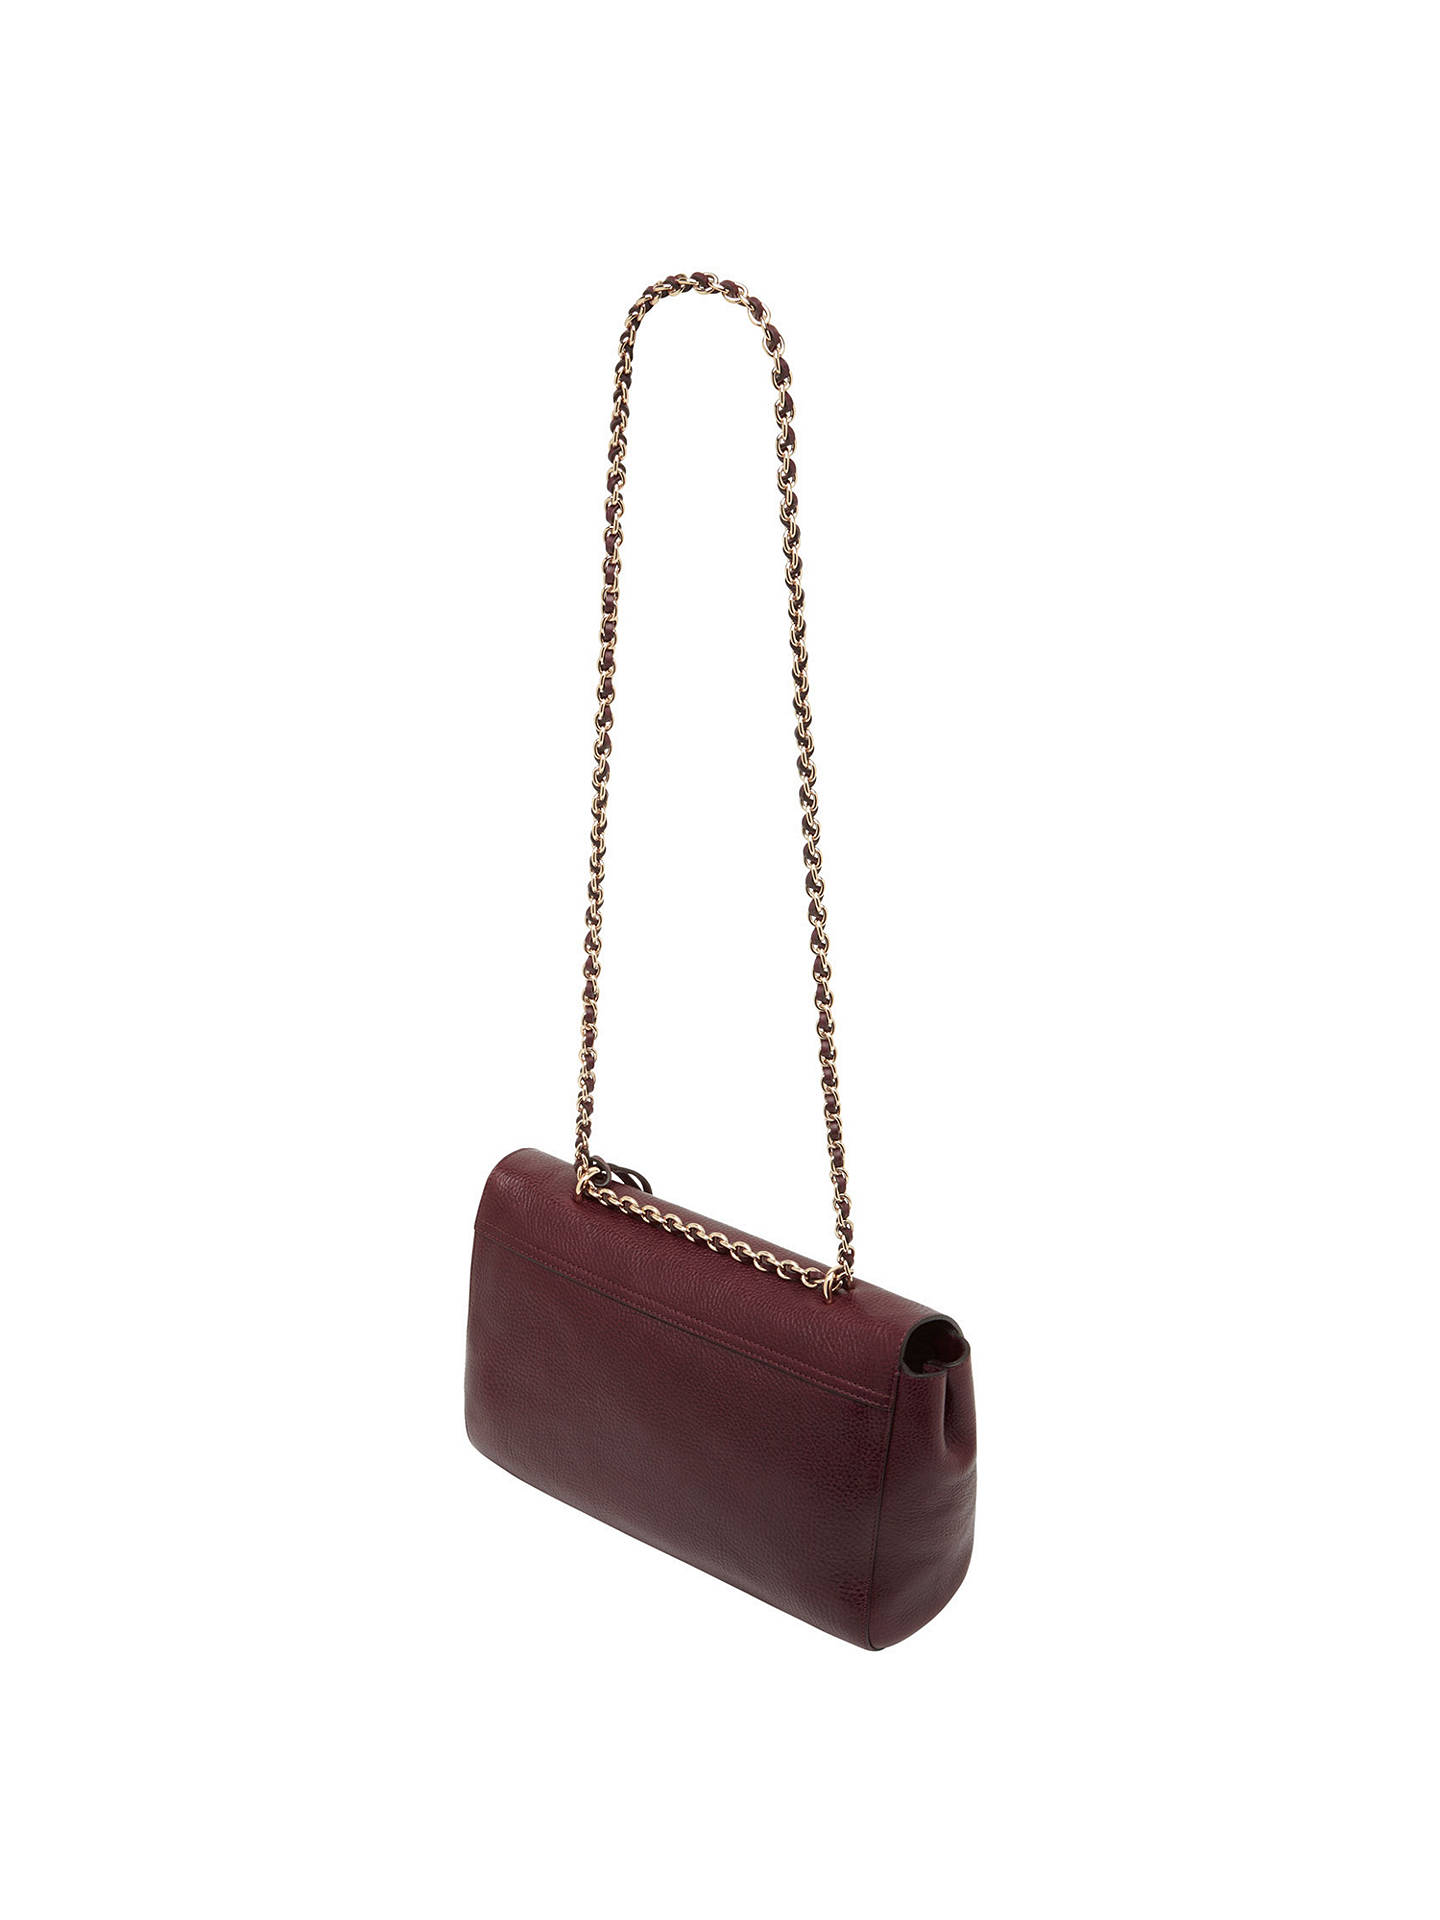 7541cf84edfc Mulberry Medium Lily Leather Shoulder Bag at John Lewis   Partners